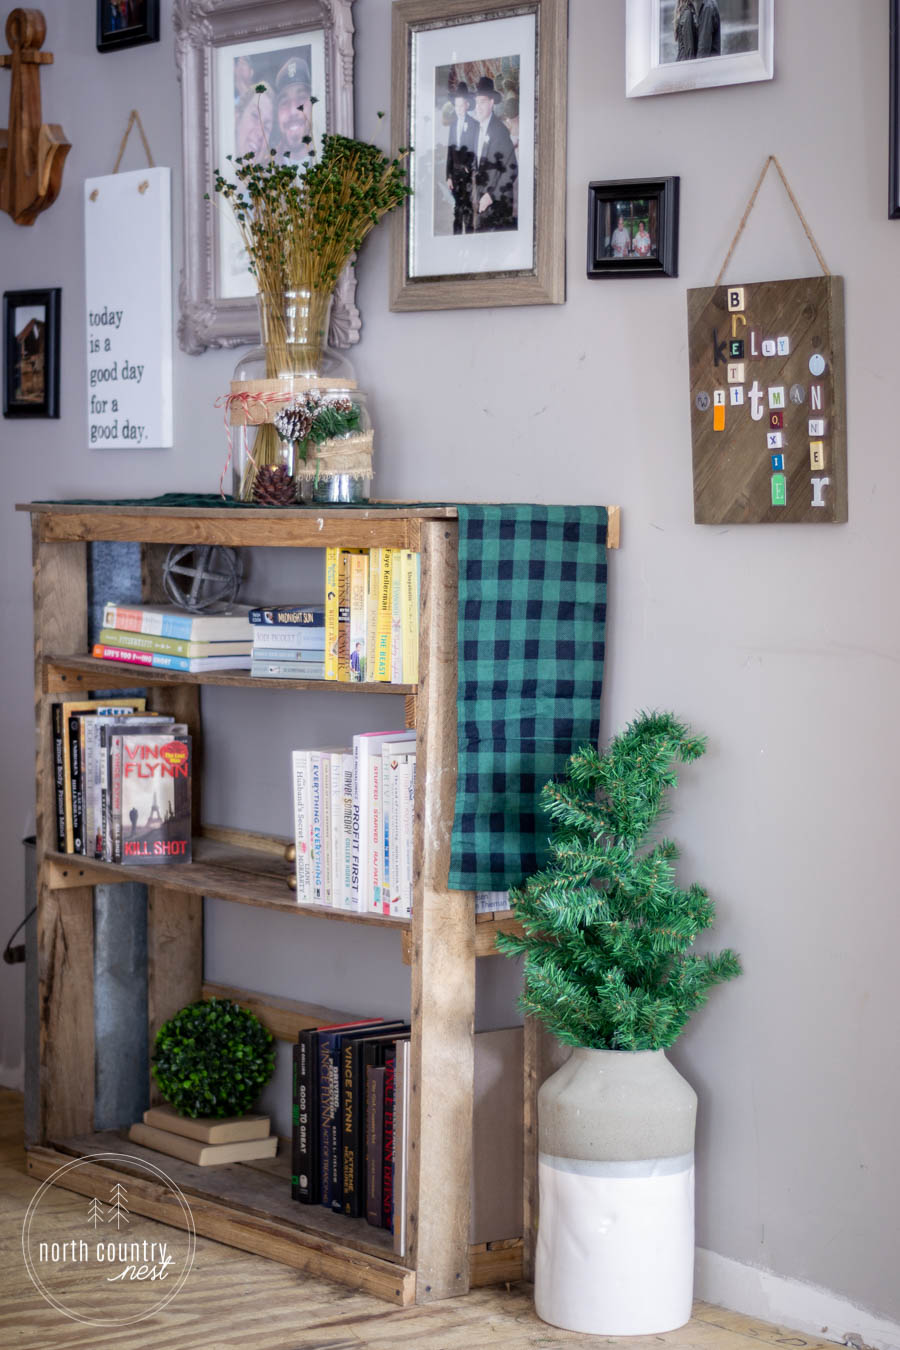 holiday decor and book shelf